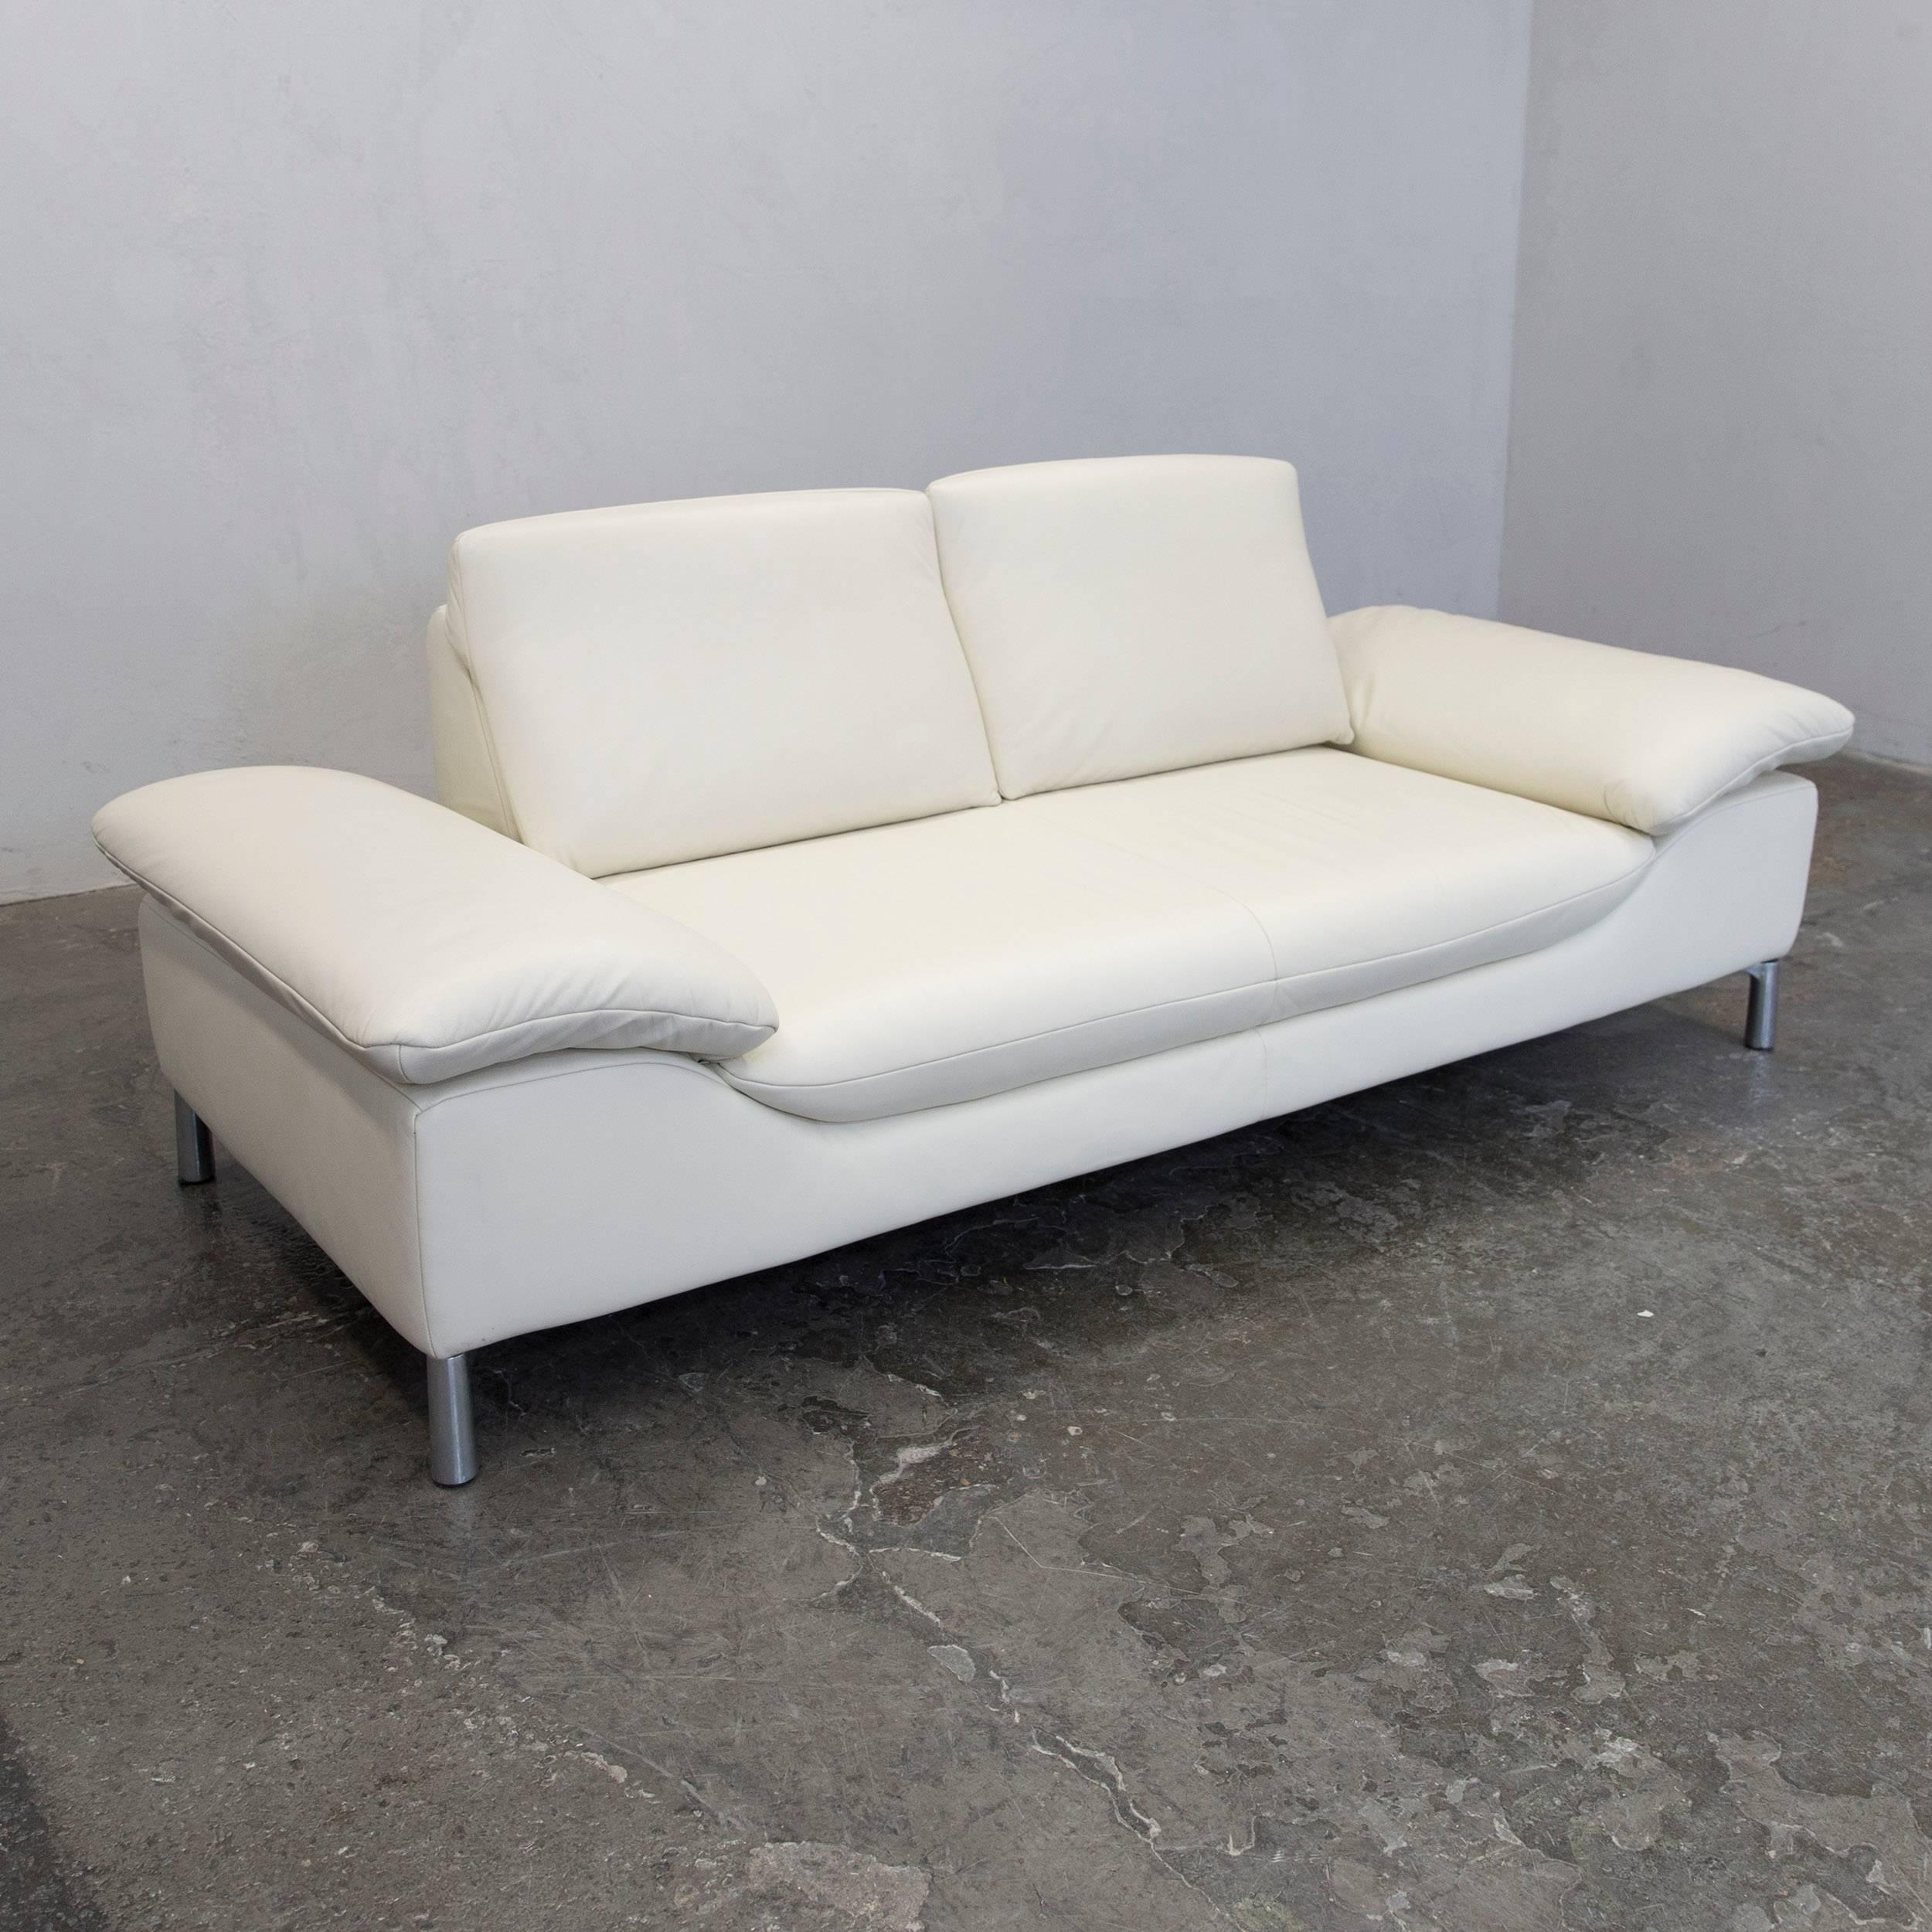 Zweisitzer Couch. Best Bristol Zweisitzer Sofa Poliform U Ua With ...